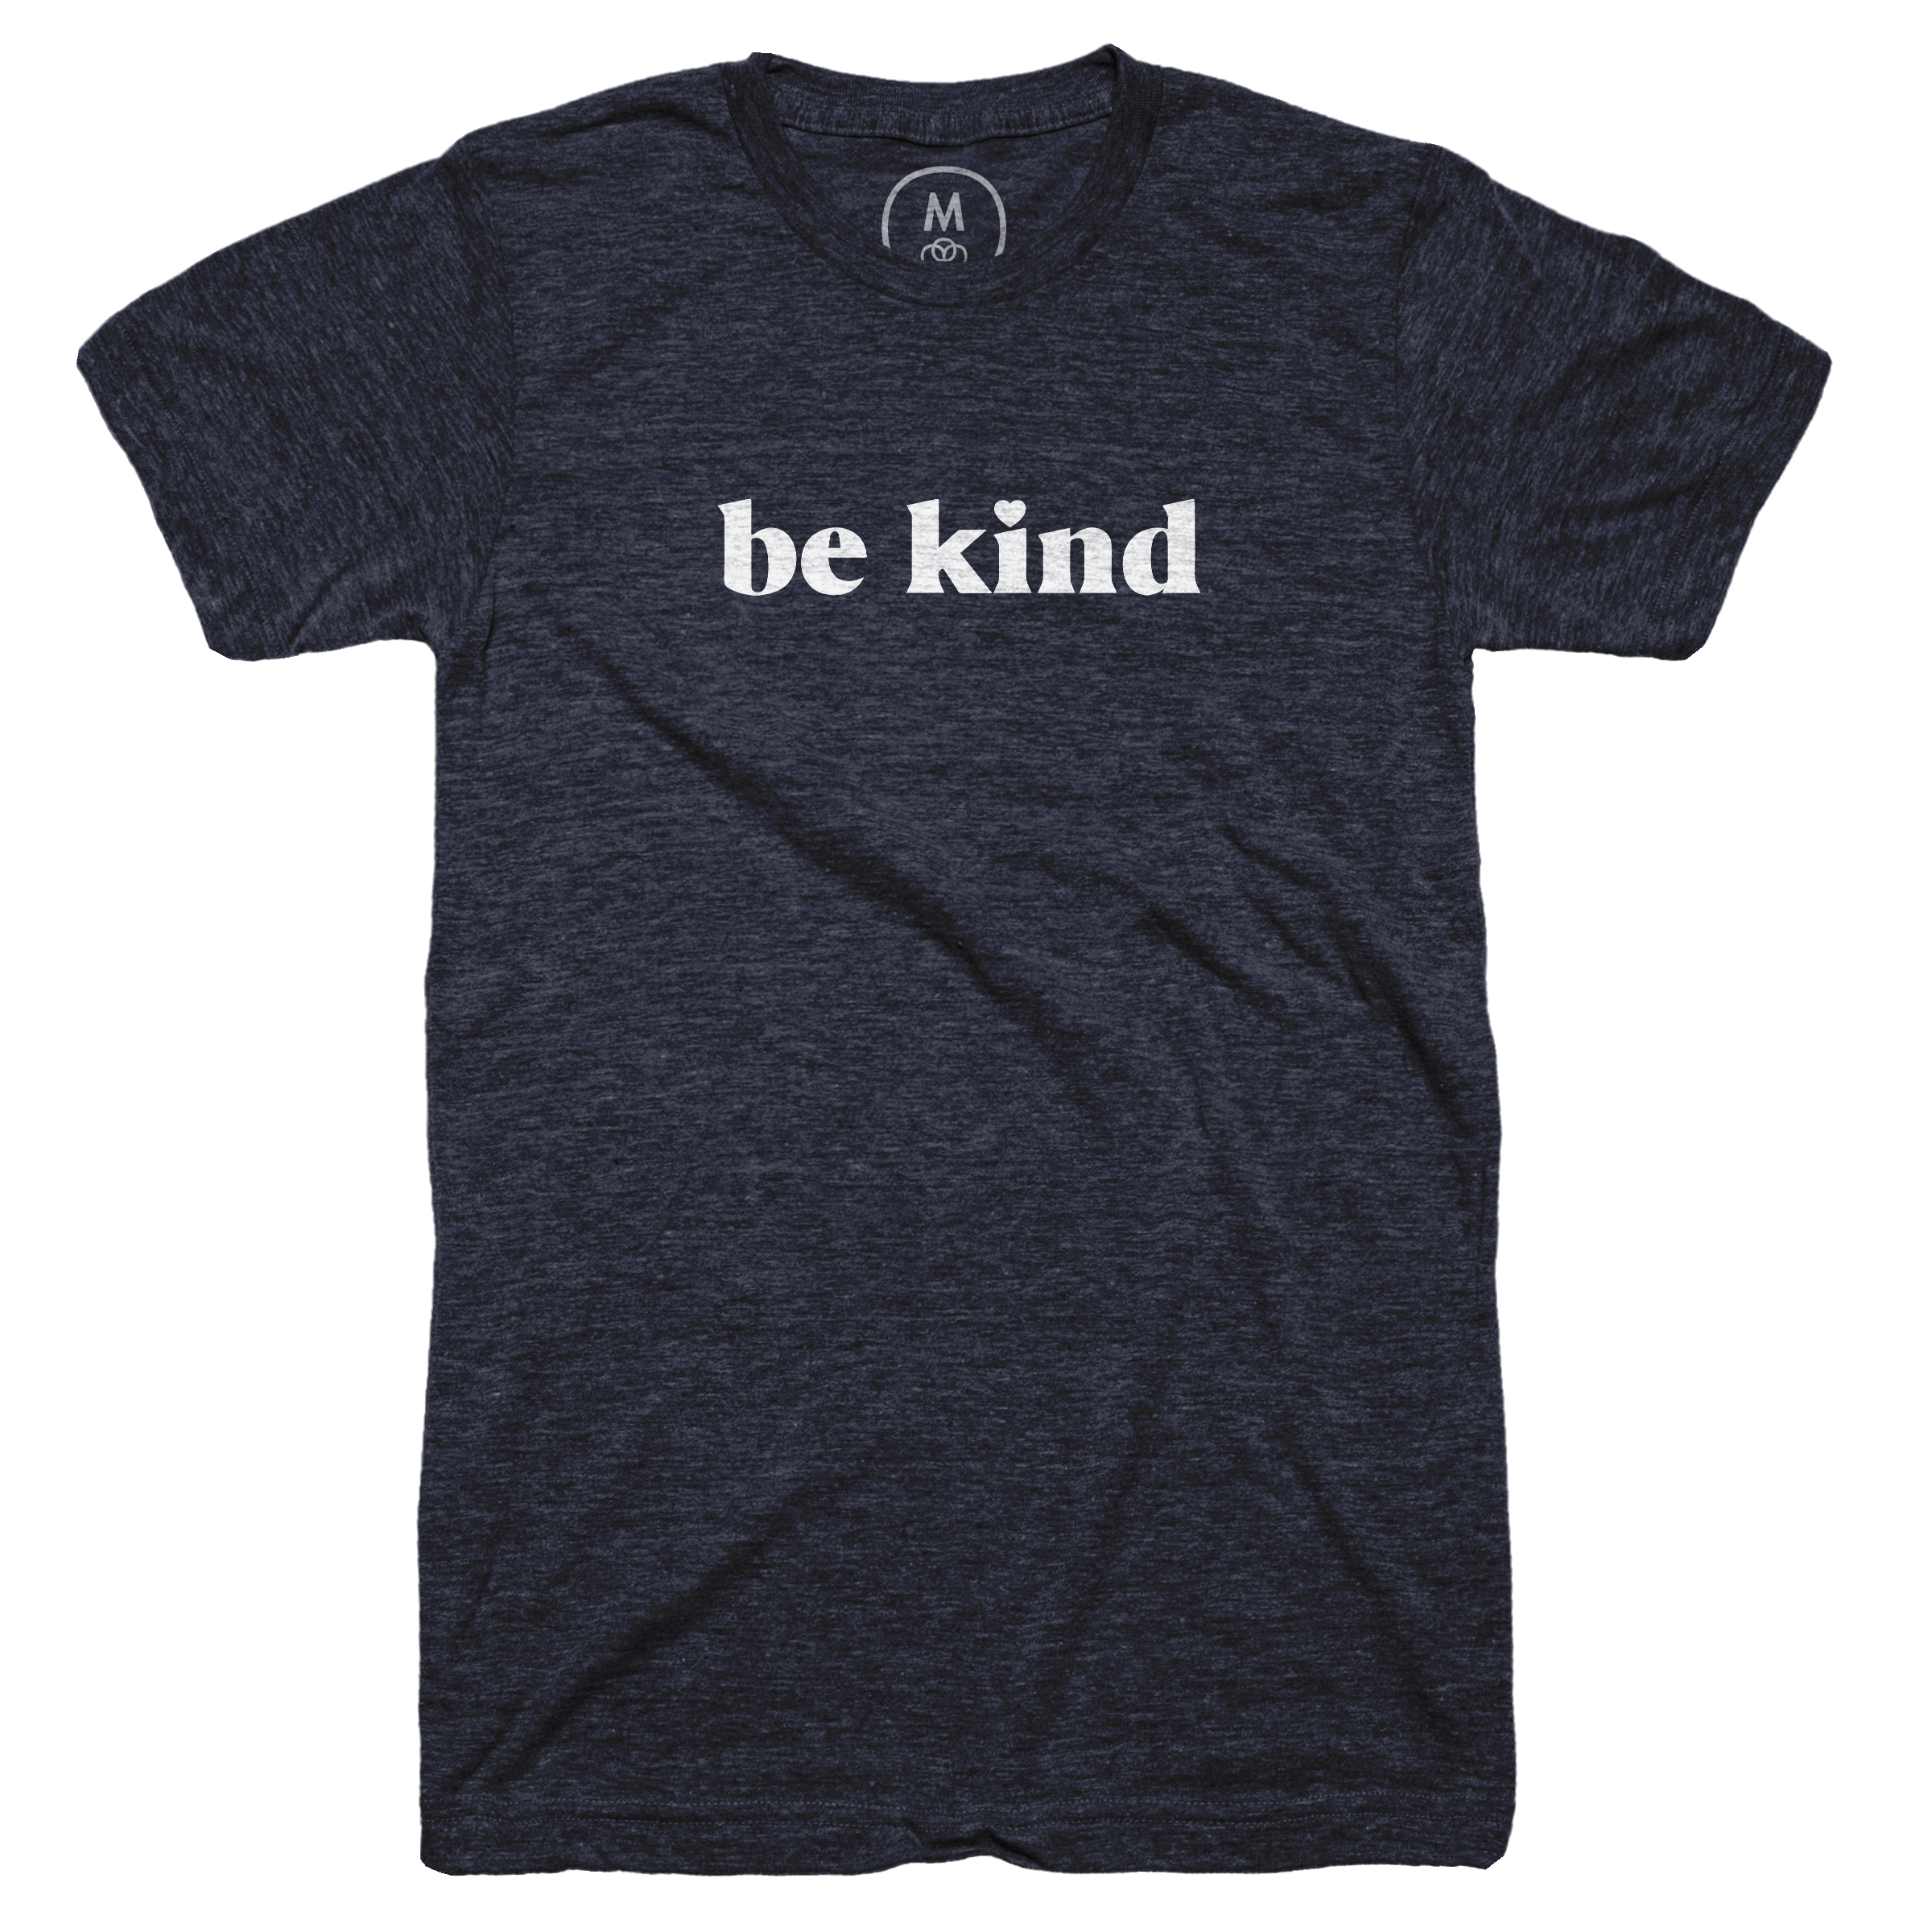 More than ever, be kind.